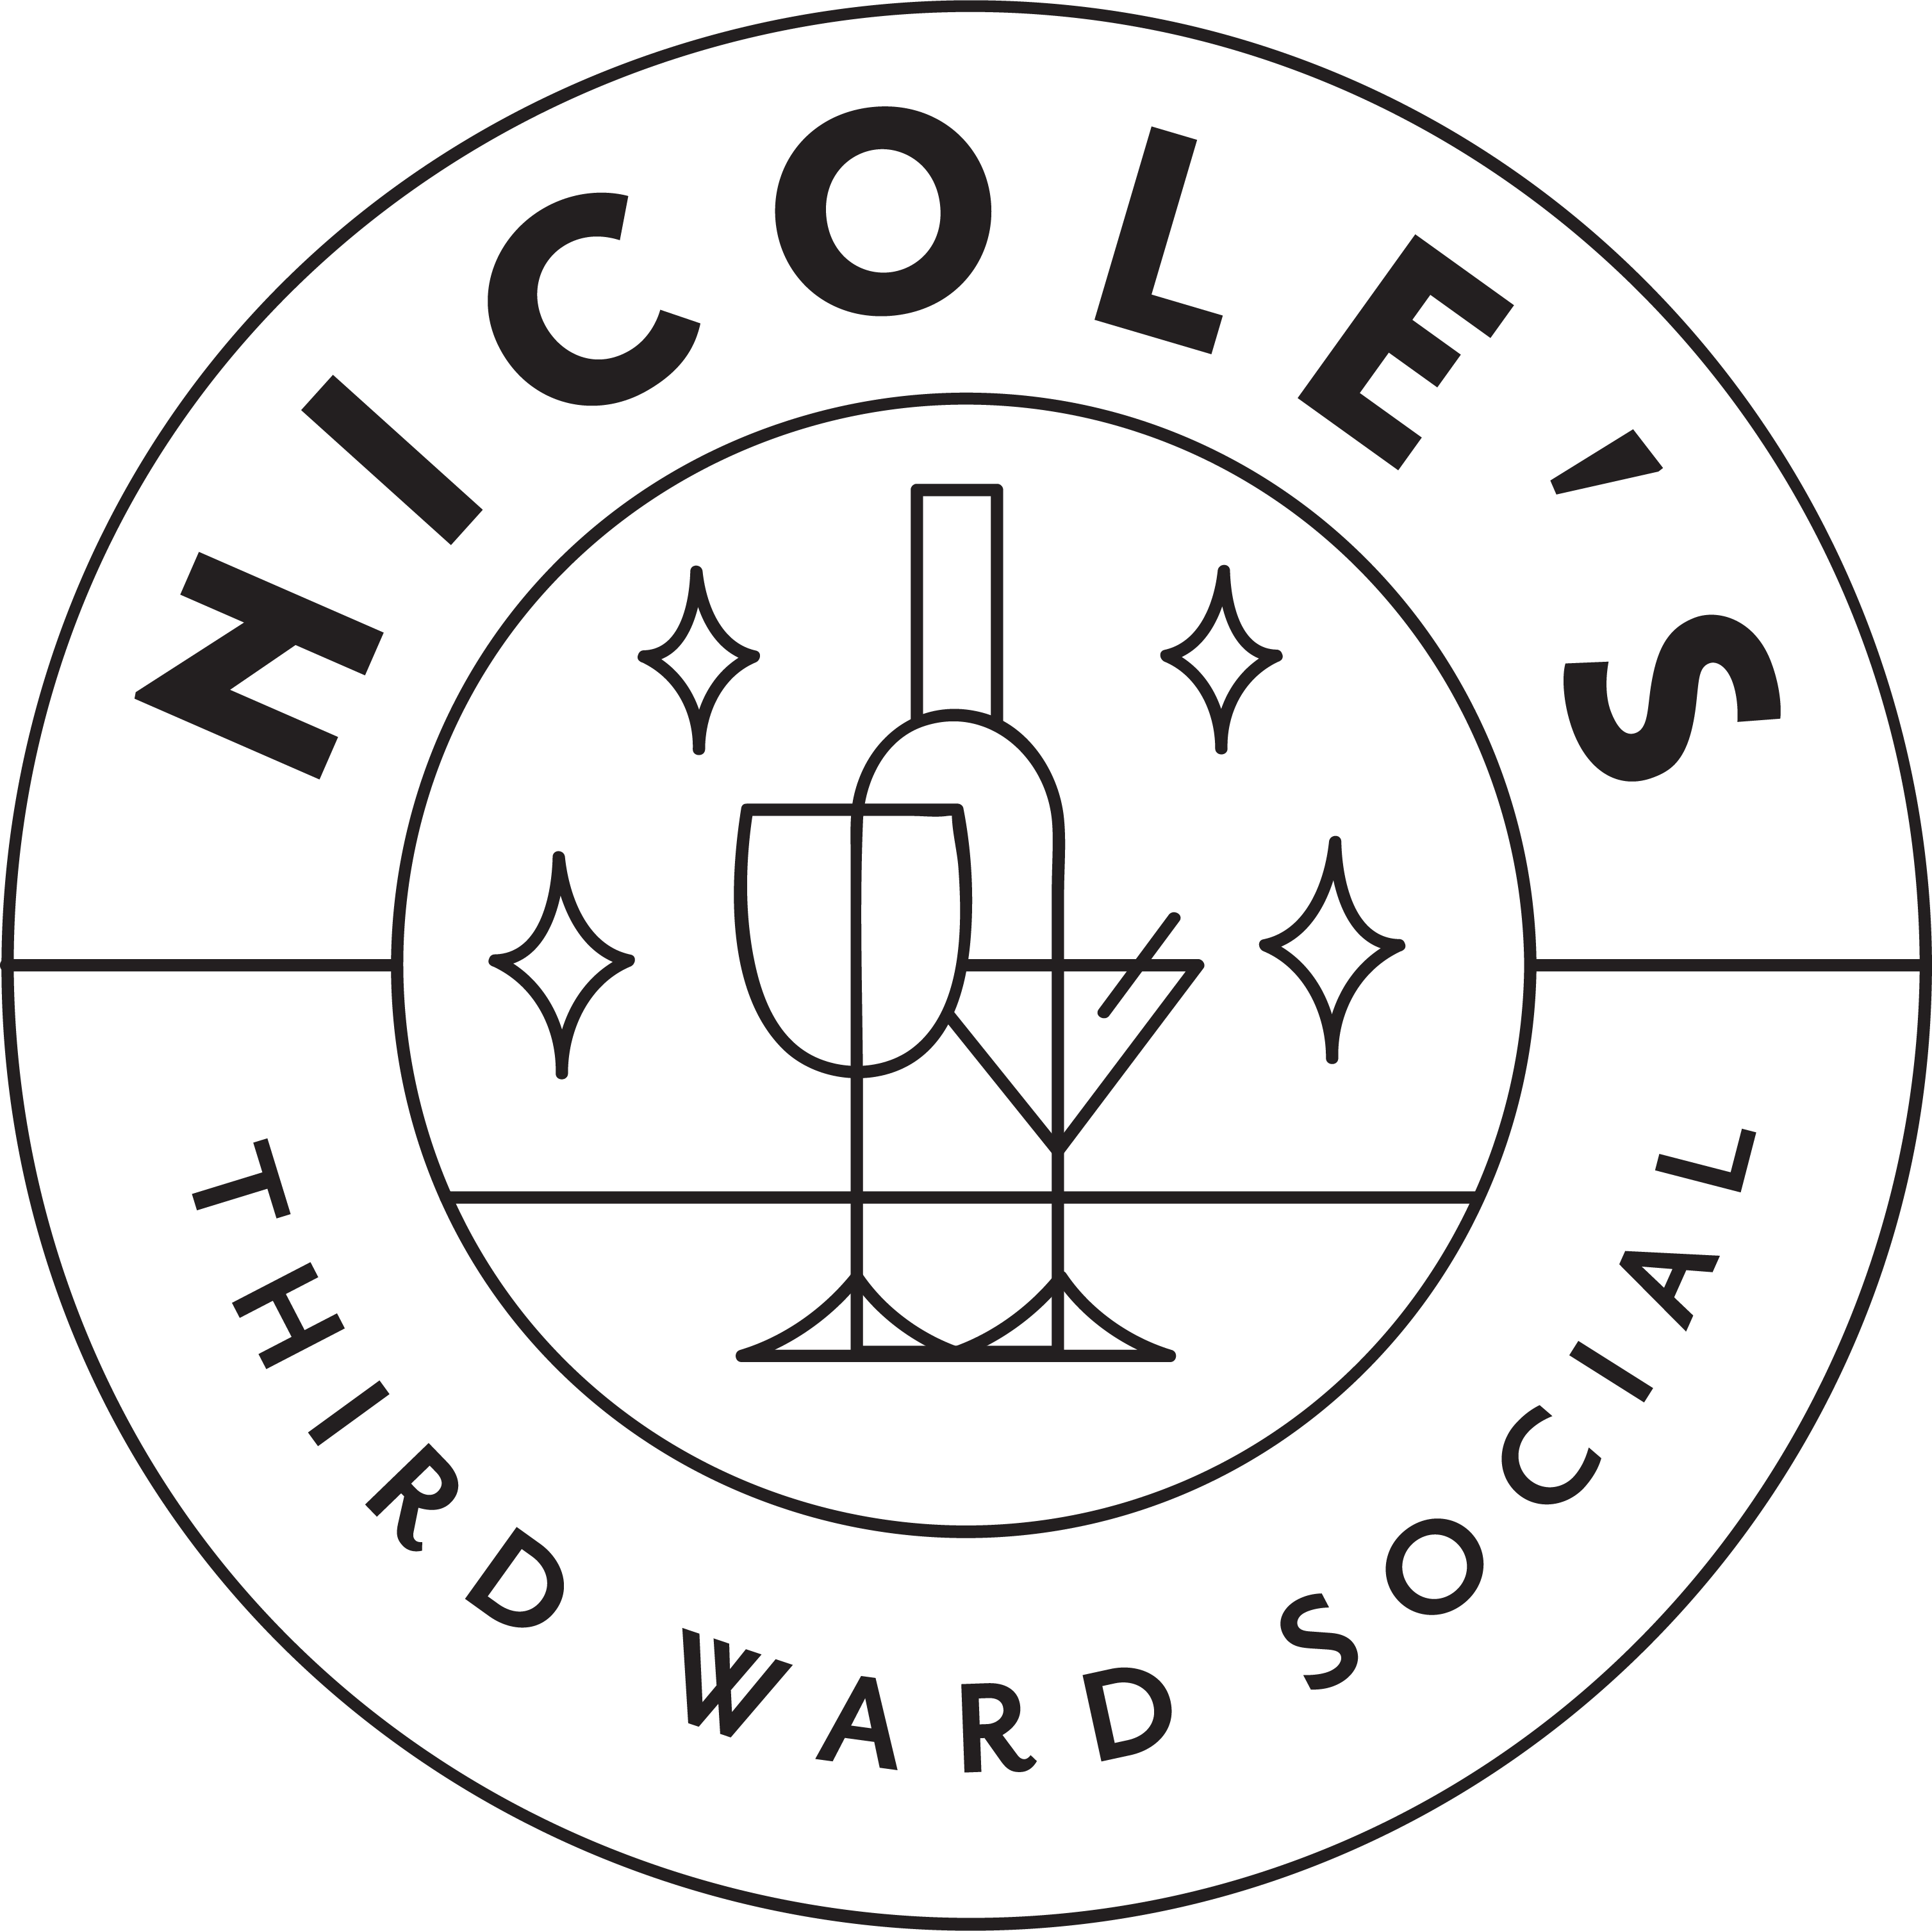 Check out our sister bar and chocolate company, Nicole's Third Ward Social, featuring Red Elephant Chocolate